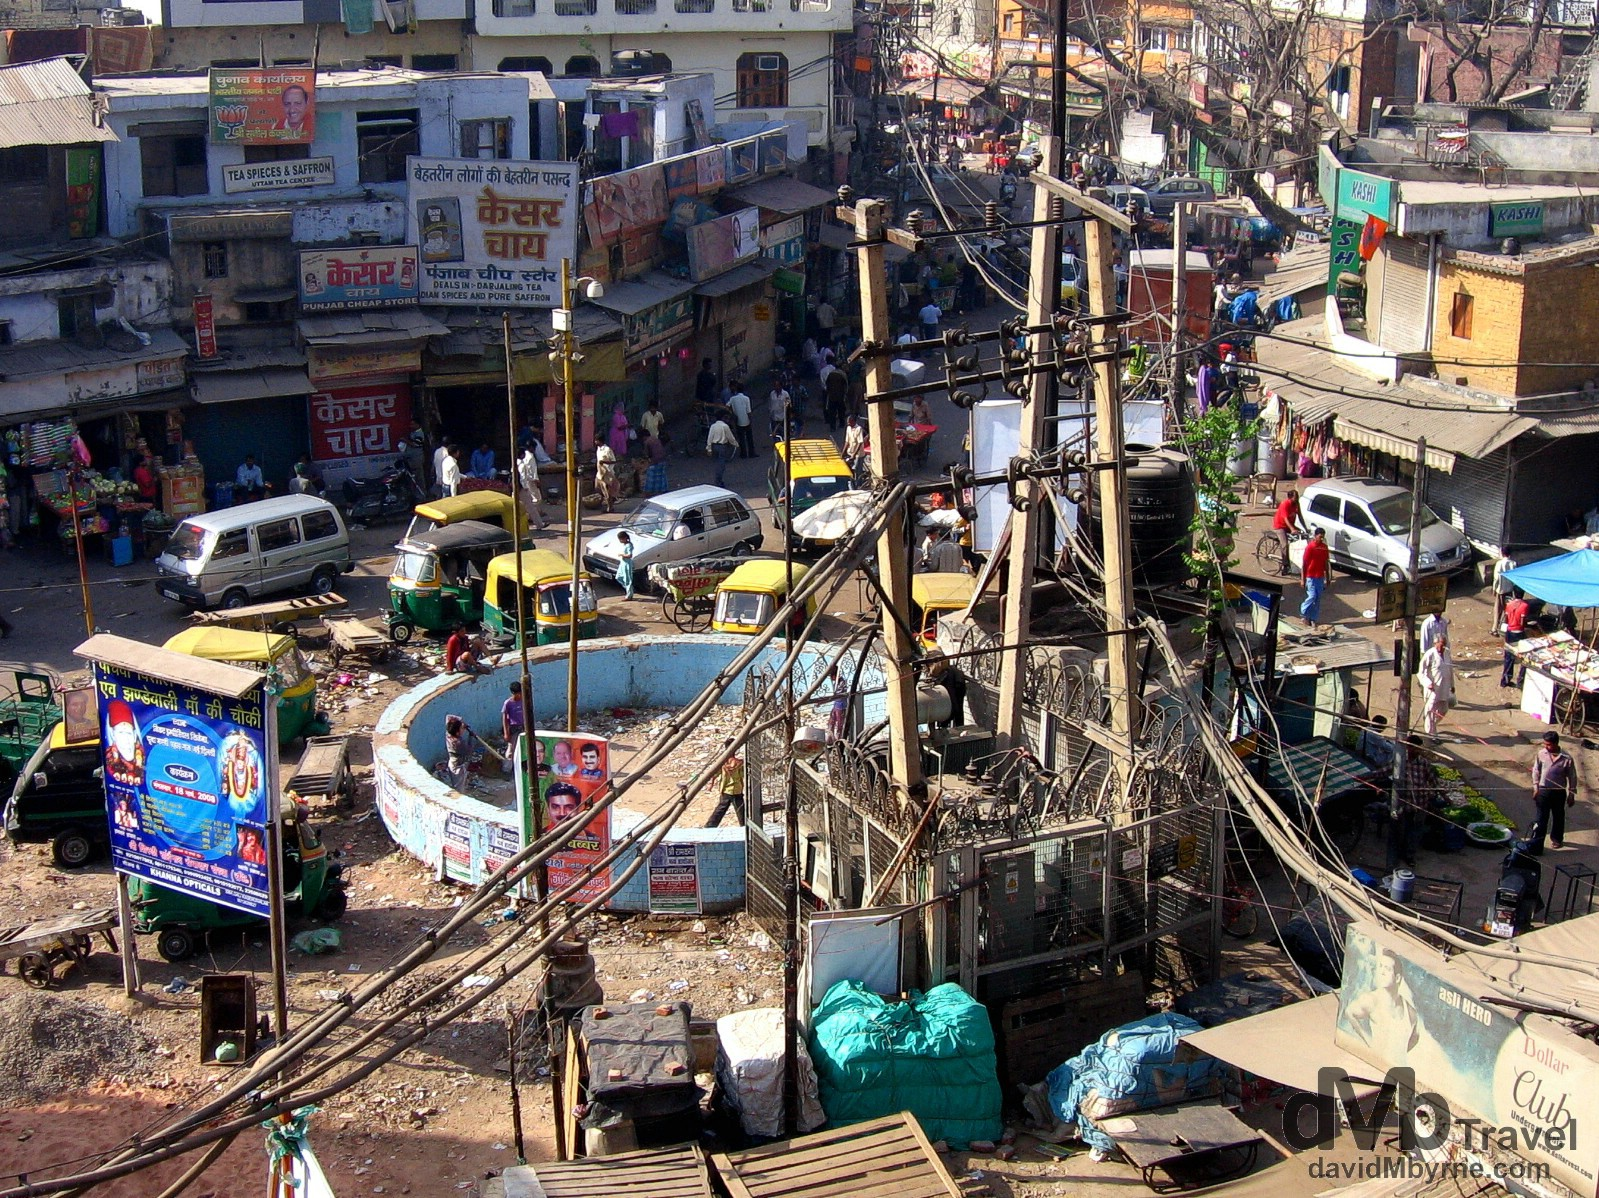 Main Bazaar in the travellers hangout of Paharganj in Delhi, India. March 21, 2008.